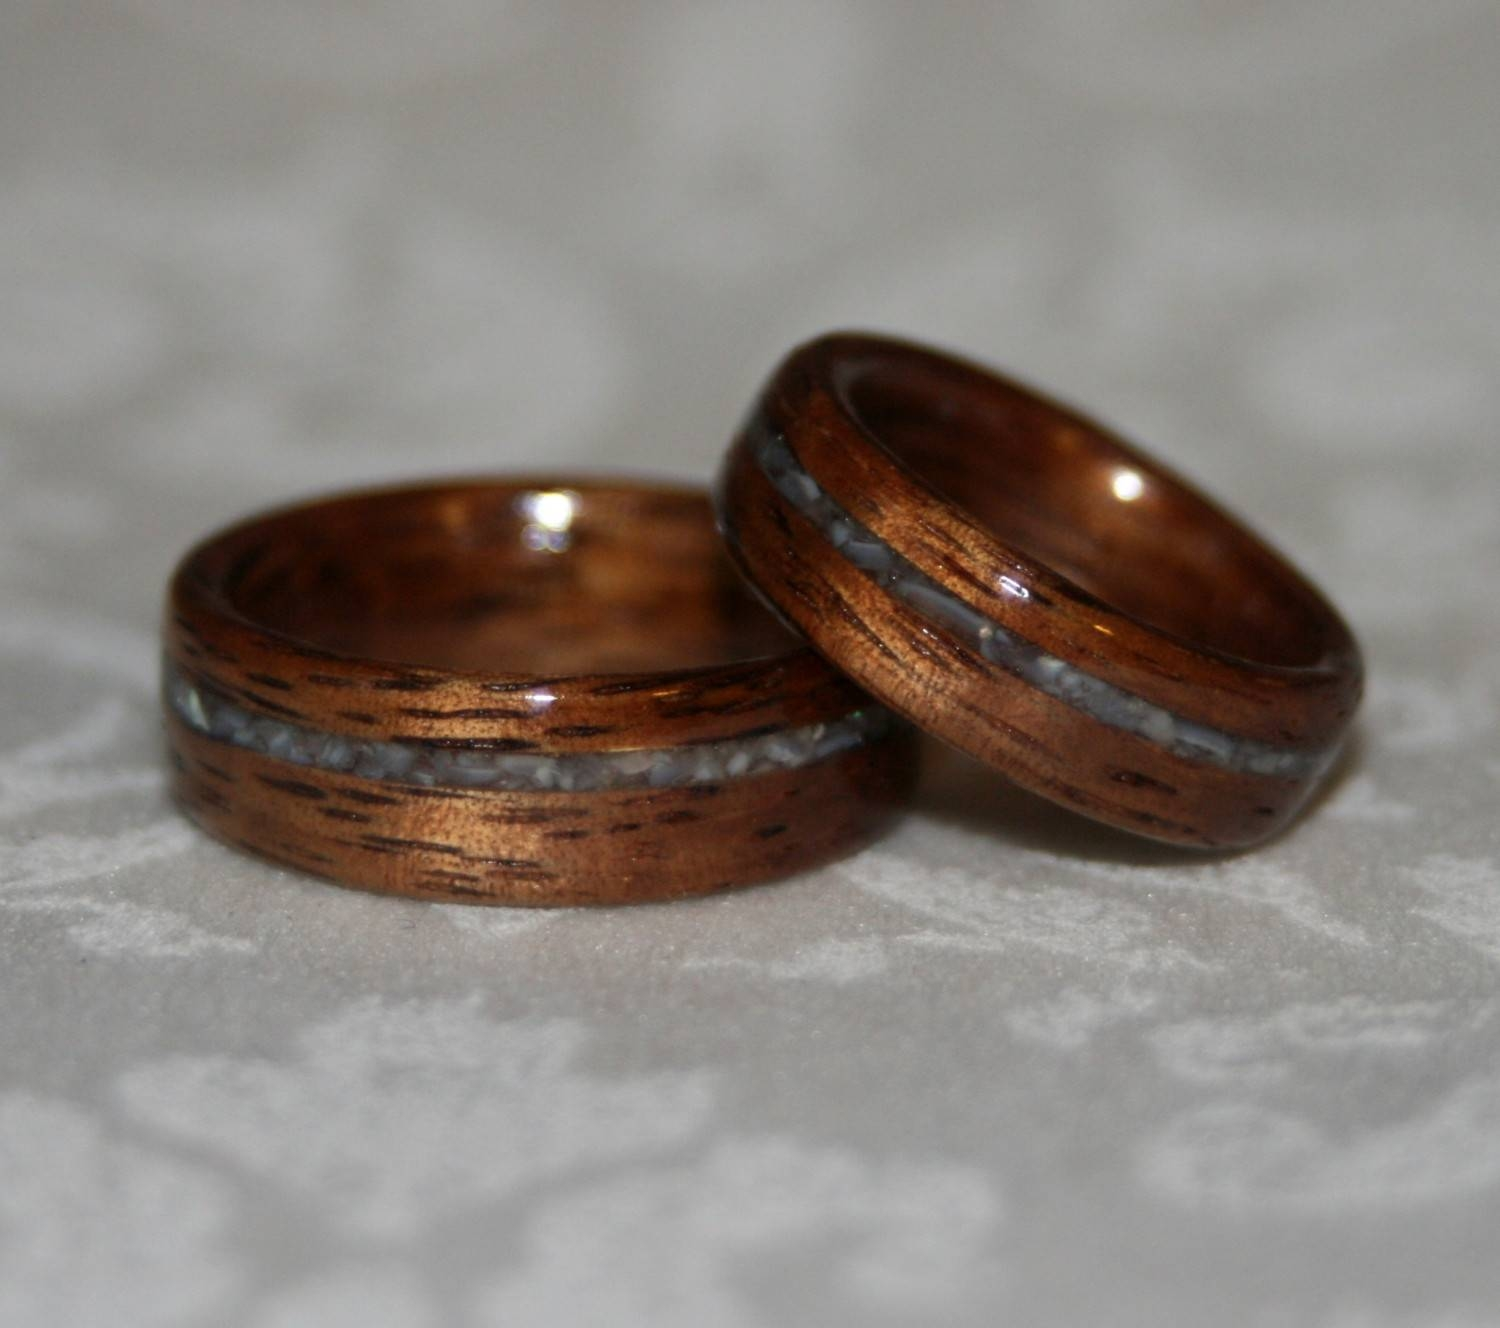 Wooden Wedding Rings — Criolla Brithday & Wedding With Men's Wedding Bands Wood Inlay (View 8 of 15)